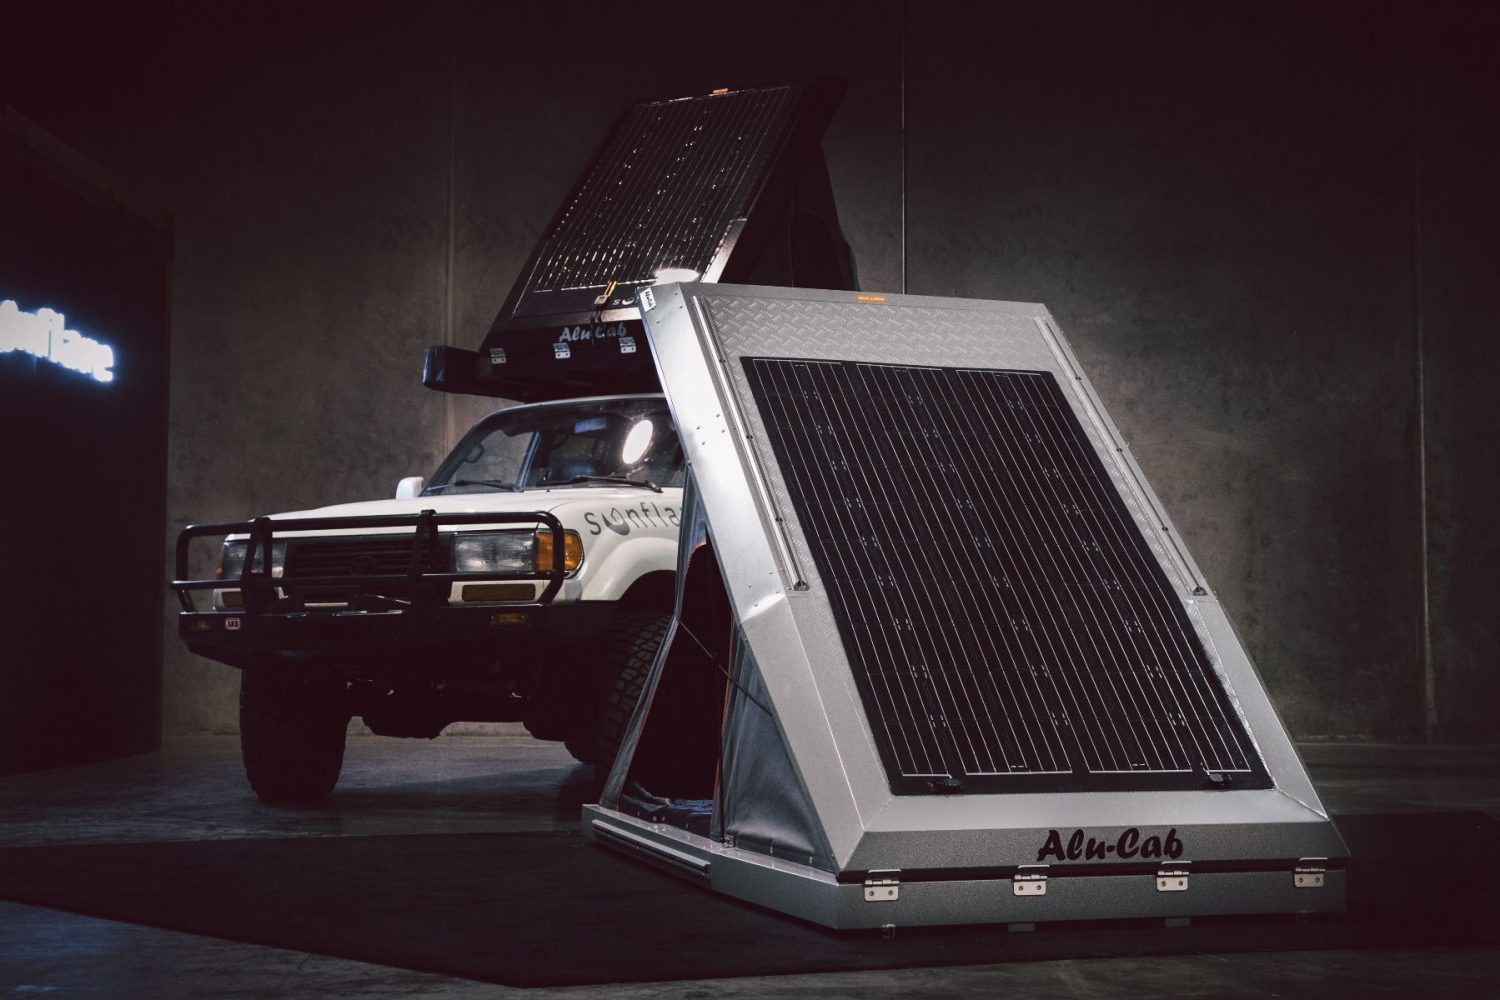 Sunflare Solar Panels for Your Tent, Car, or Camper